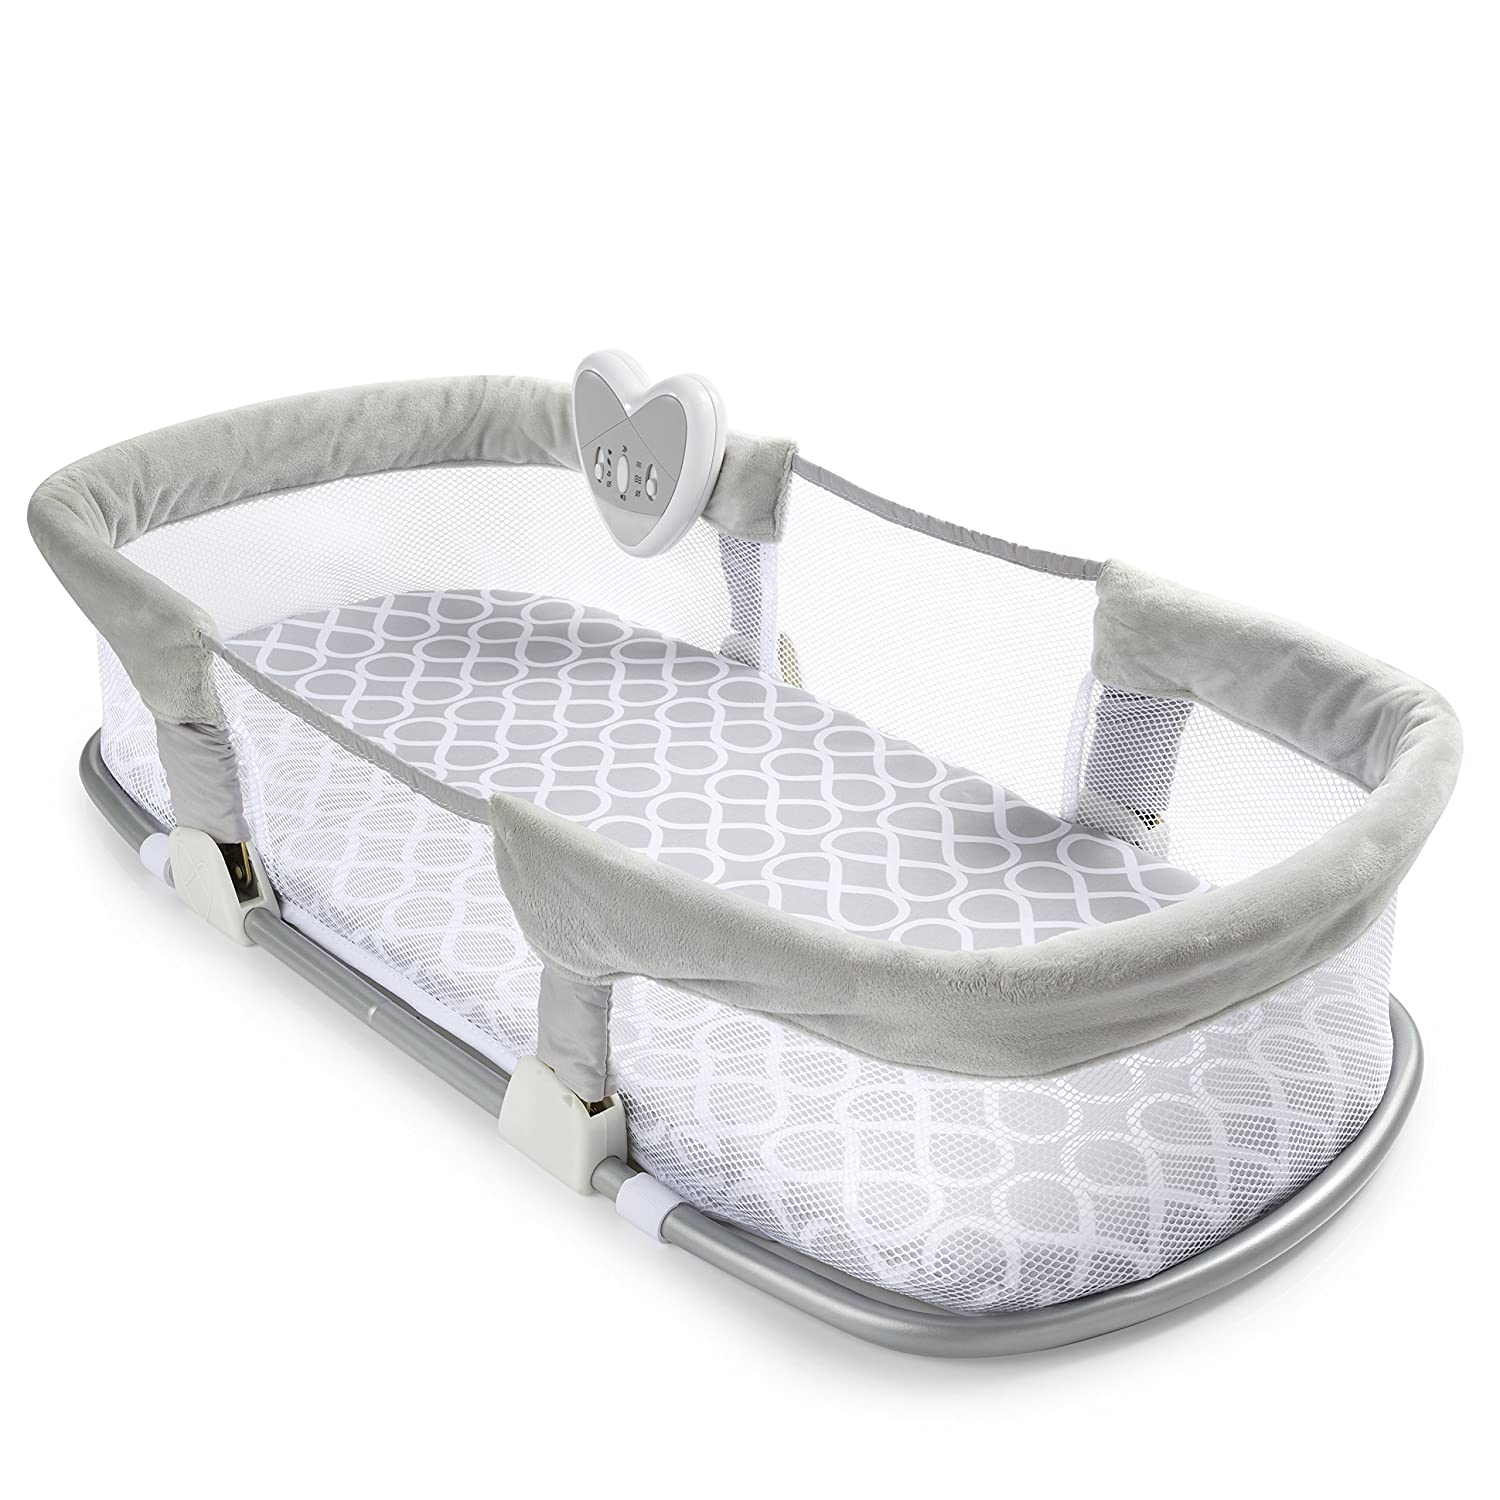 Baby bed heartbeat - Baby Bed Heartbeat 26